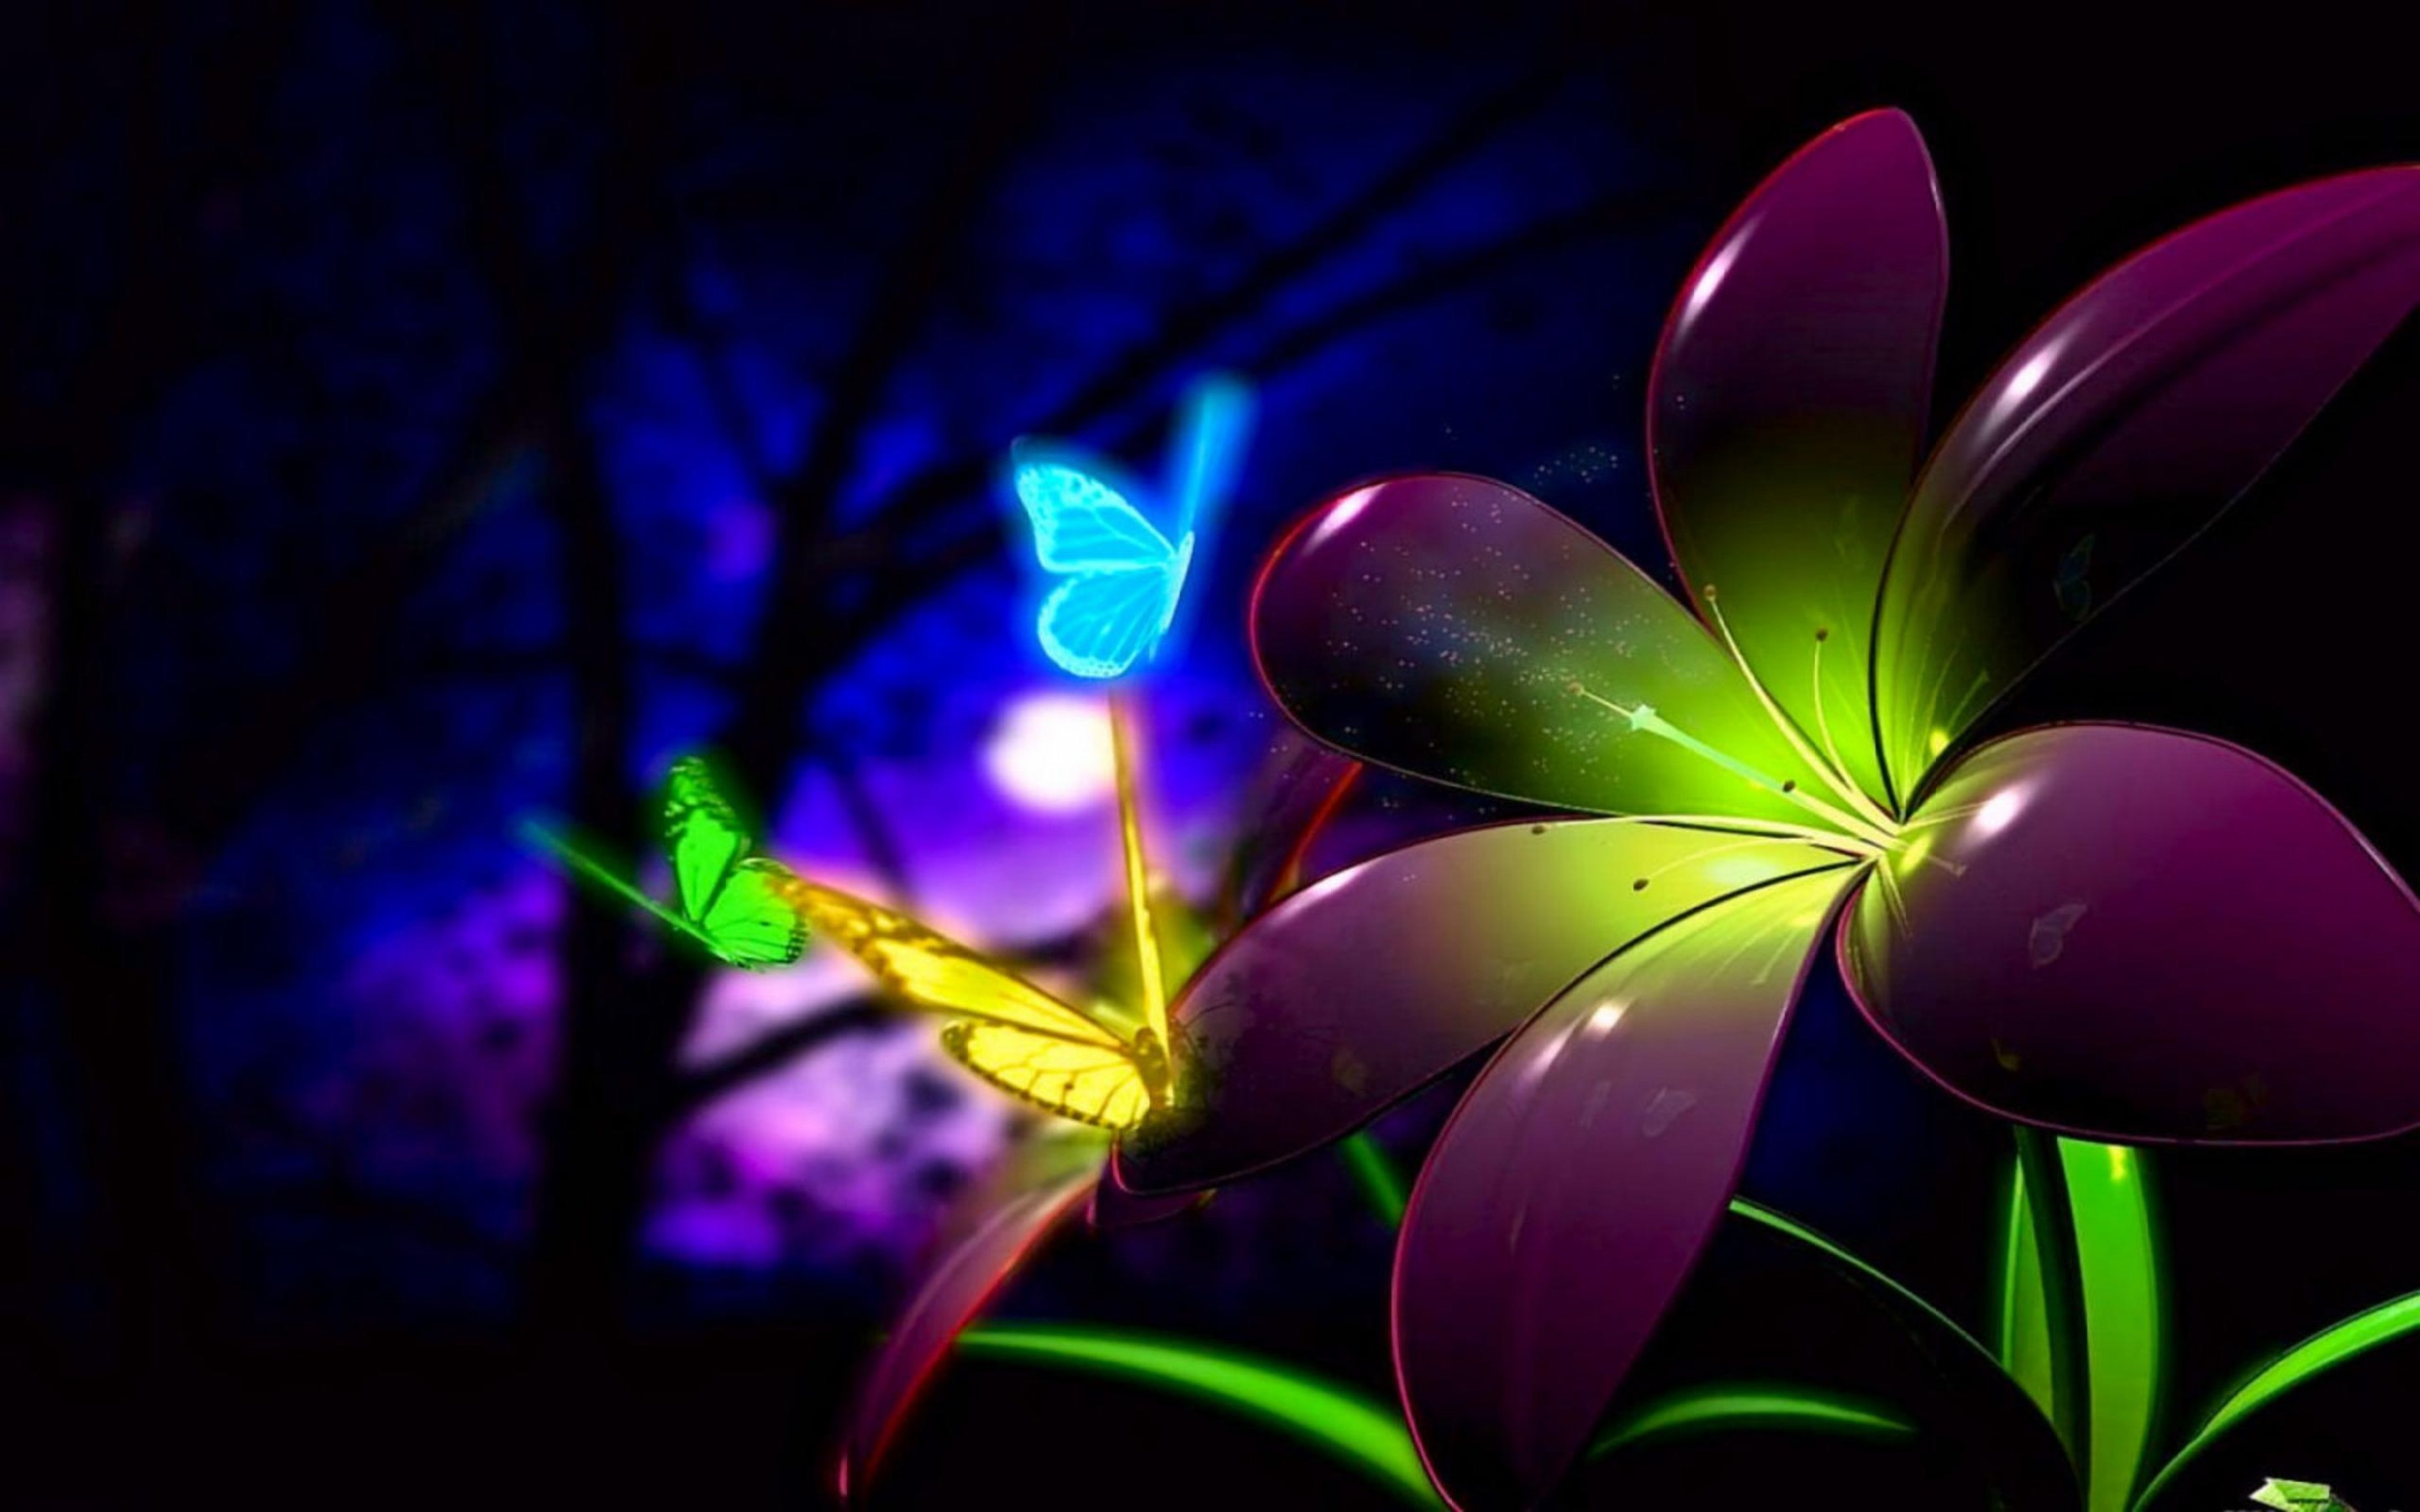 flowers good night wishes wallpapers